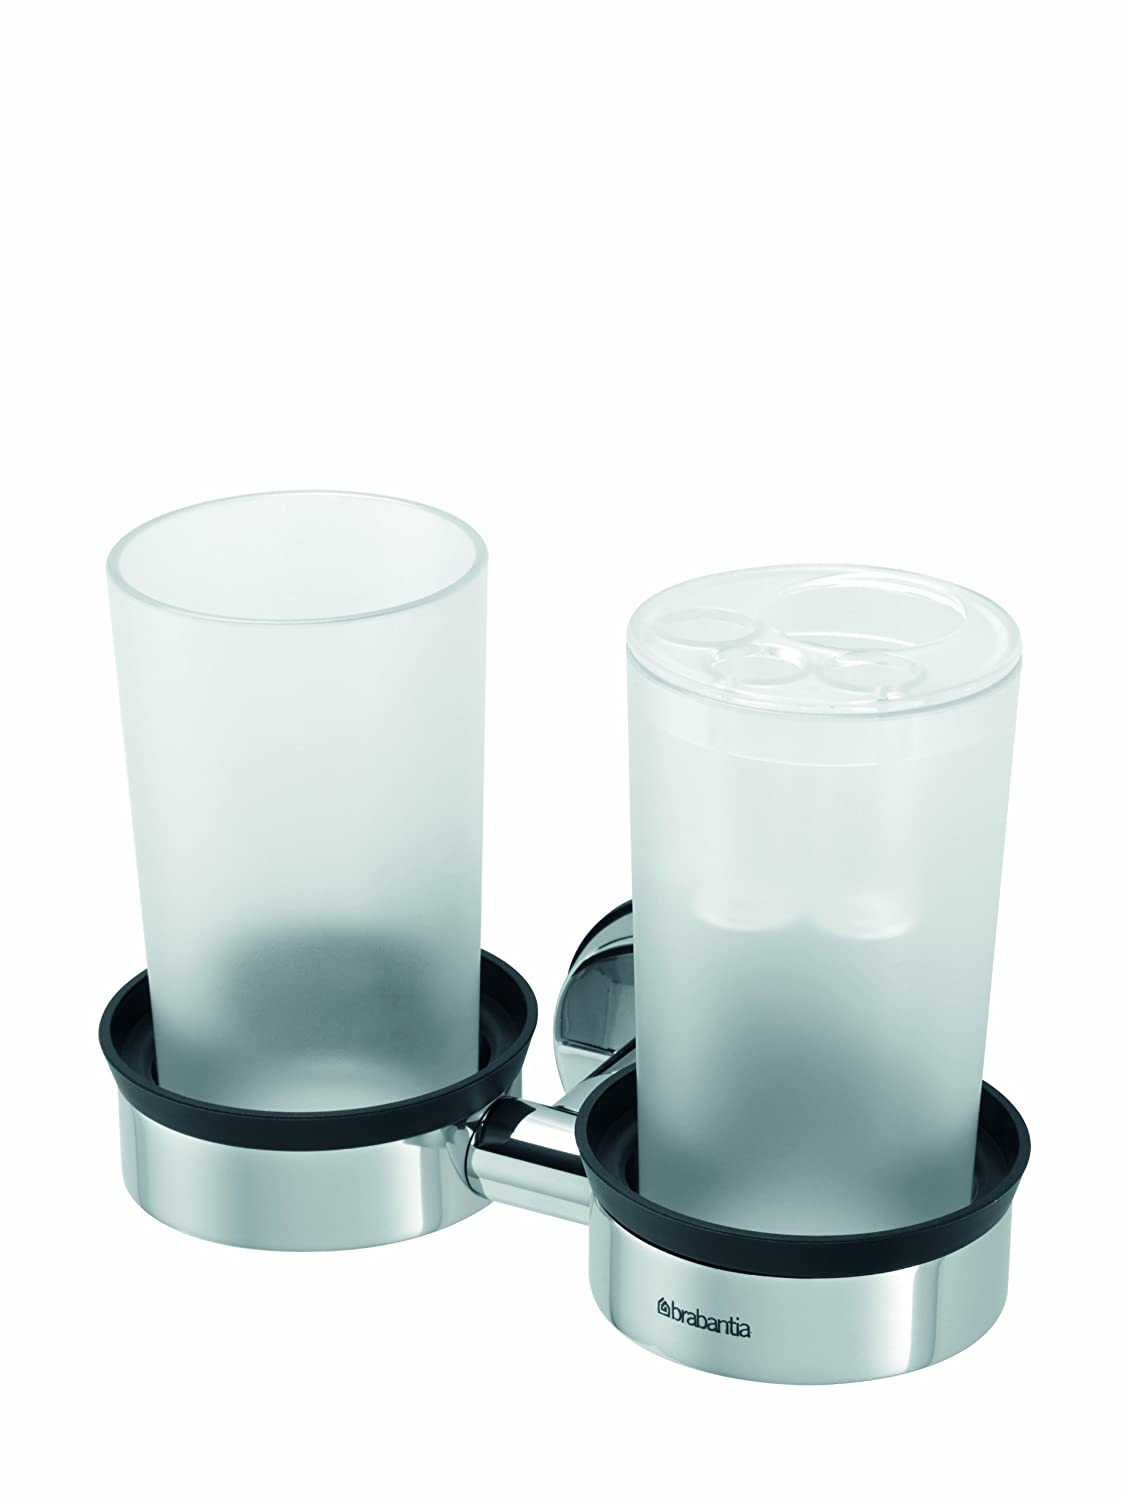 Brabantia Double Cup and Tootbrush Holder - Brilliant Steel 427527